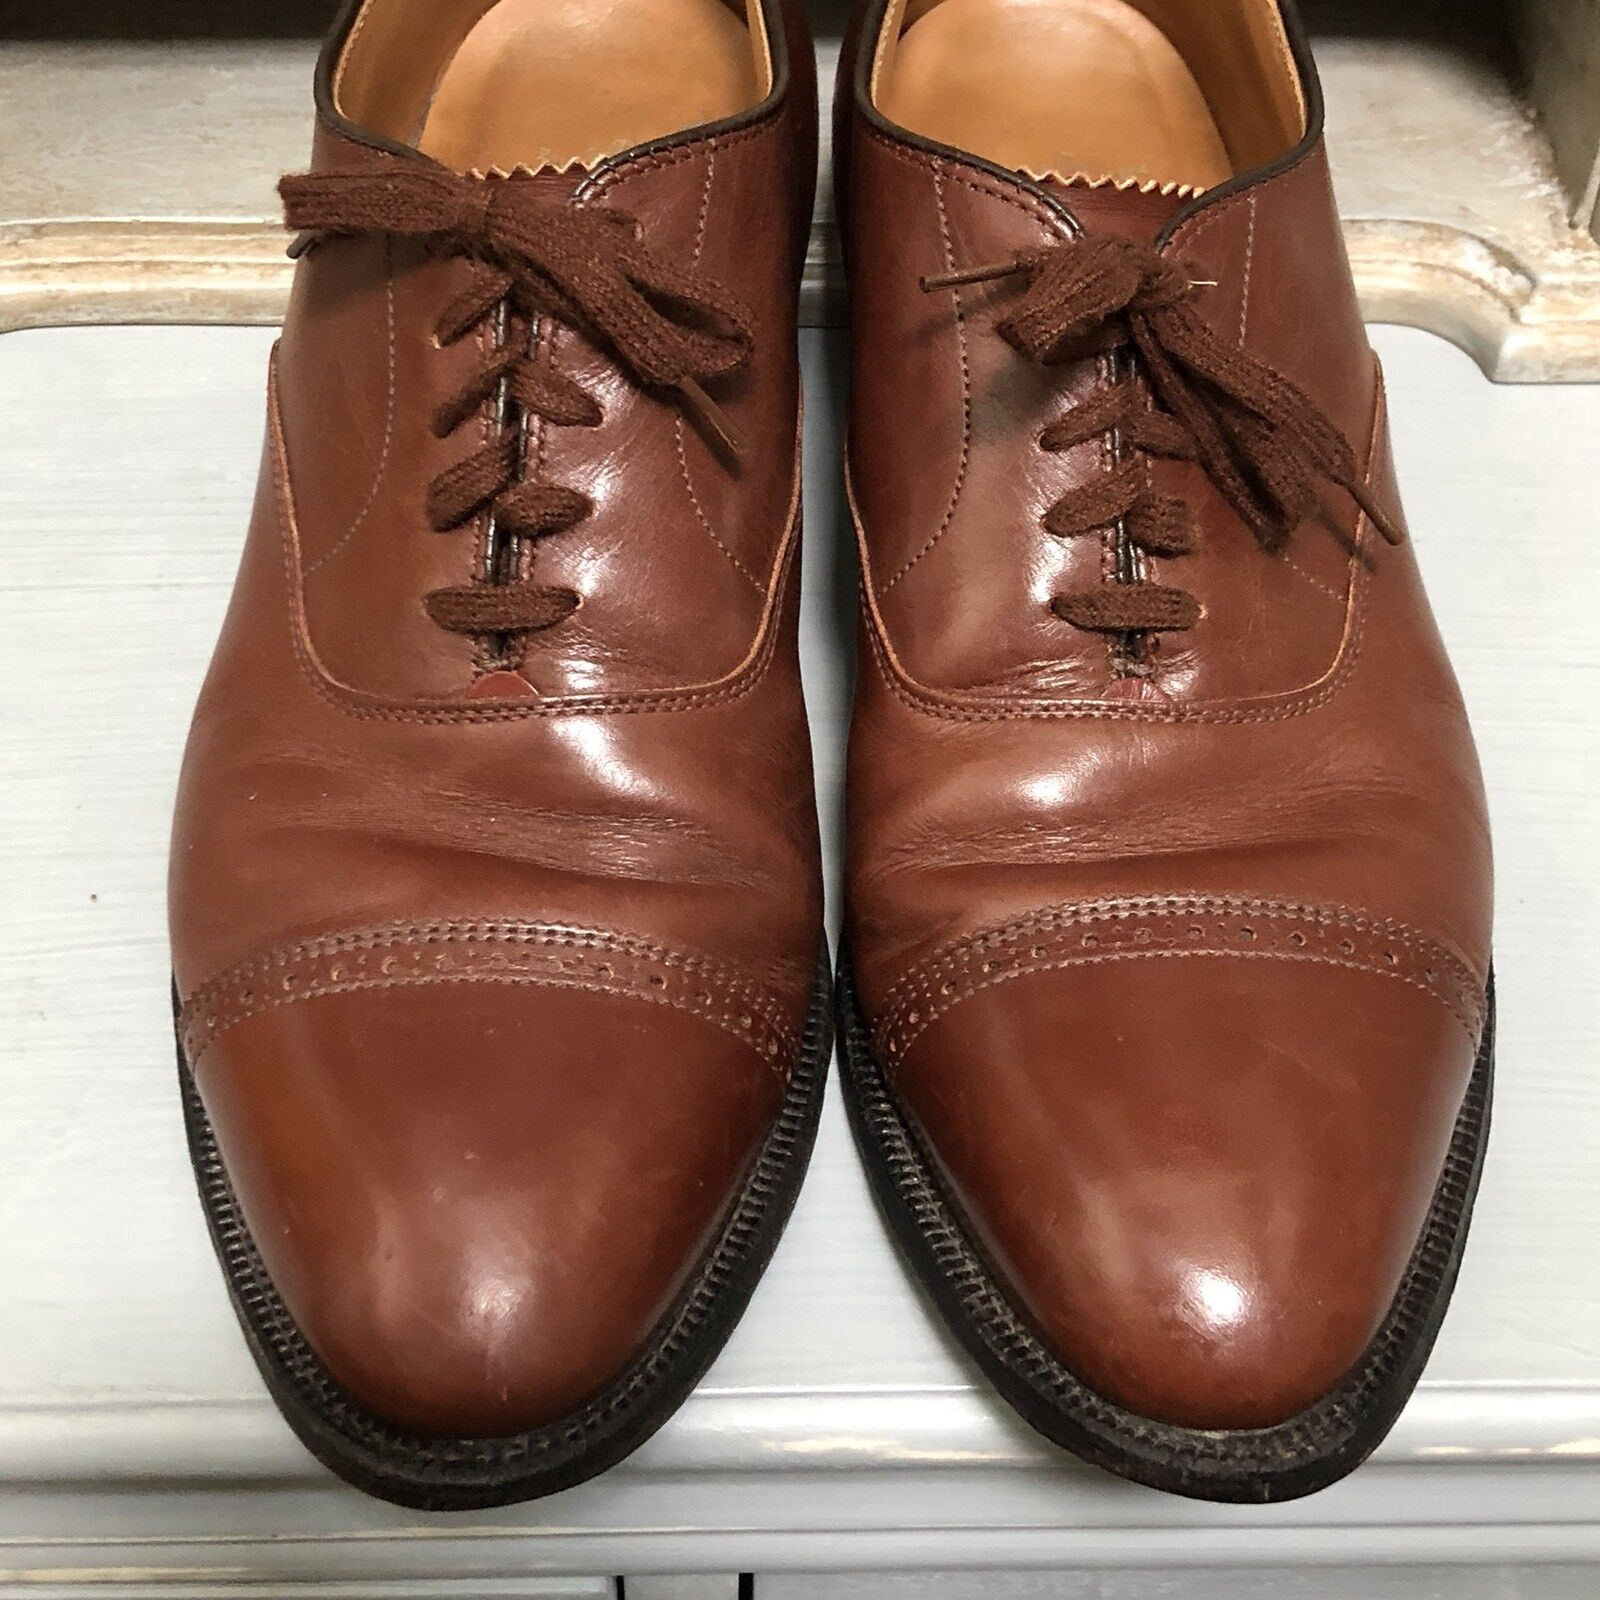 Alden 900 Balmoral Oxford shoes Brown Calfskin Perforated Straight Tip 10 AA B